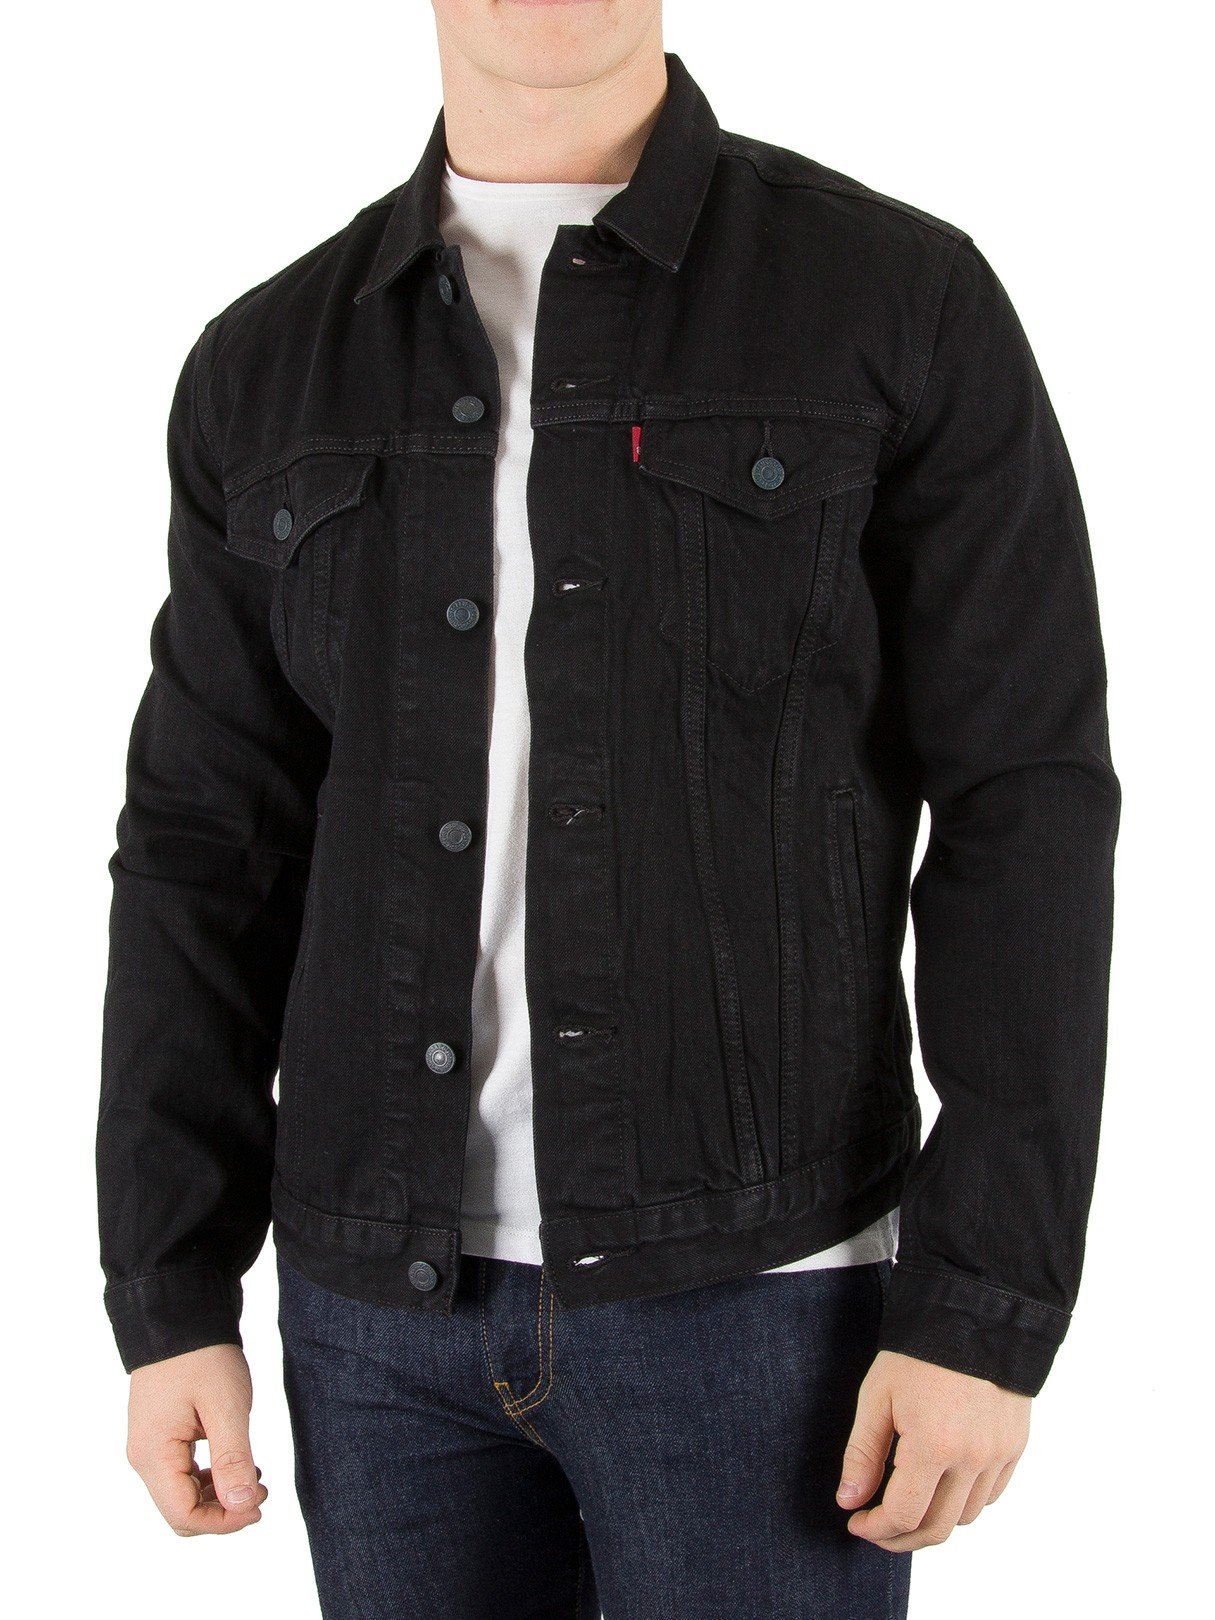 Leviu0026#39;s Menu0026#39;s Berkman Trucker Jacket Black | eBay